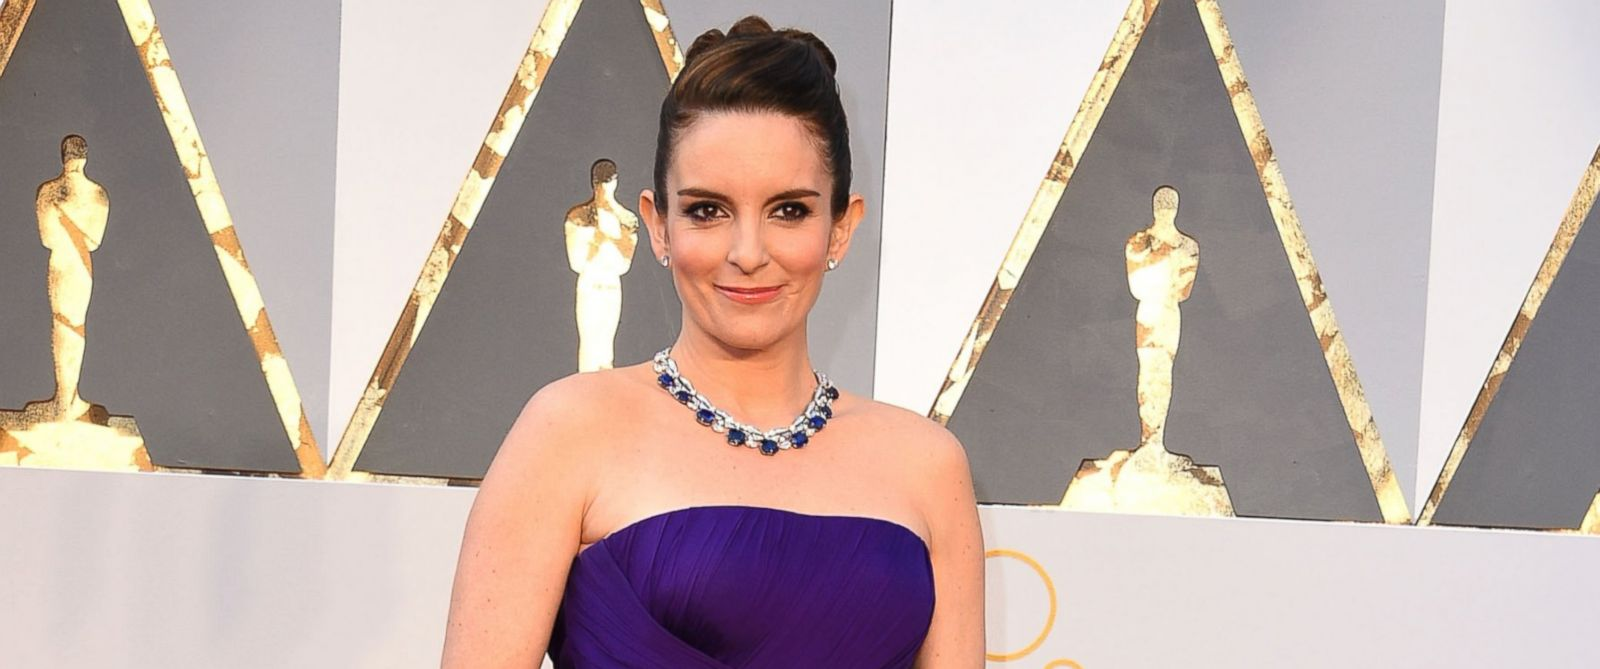 PHOTO: Tina Fey arrives at the 88th Annual Academy Awards, Feb. 28, 2016 in Hollywood, Calif.